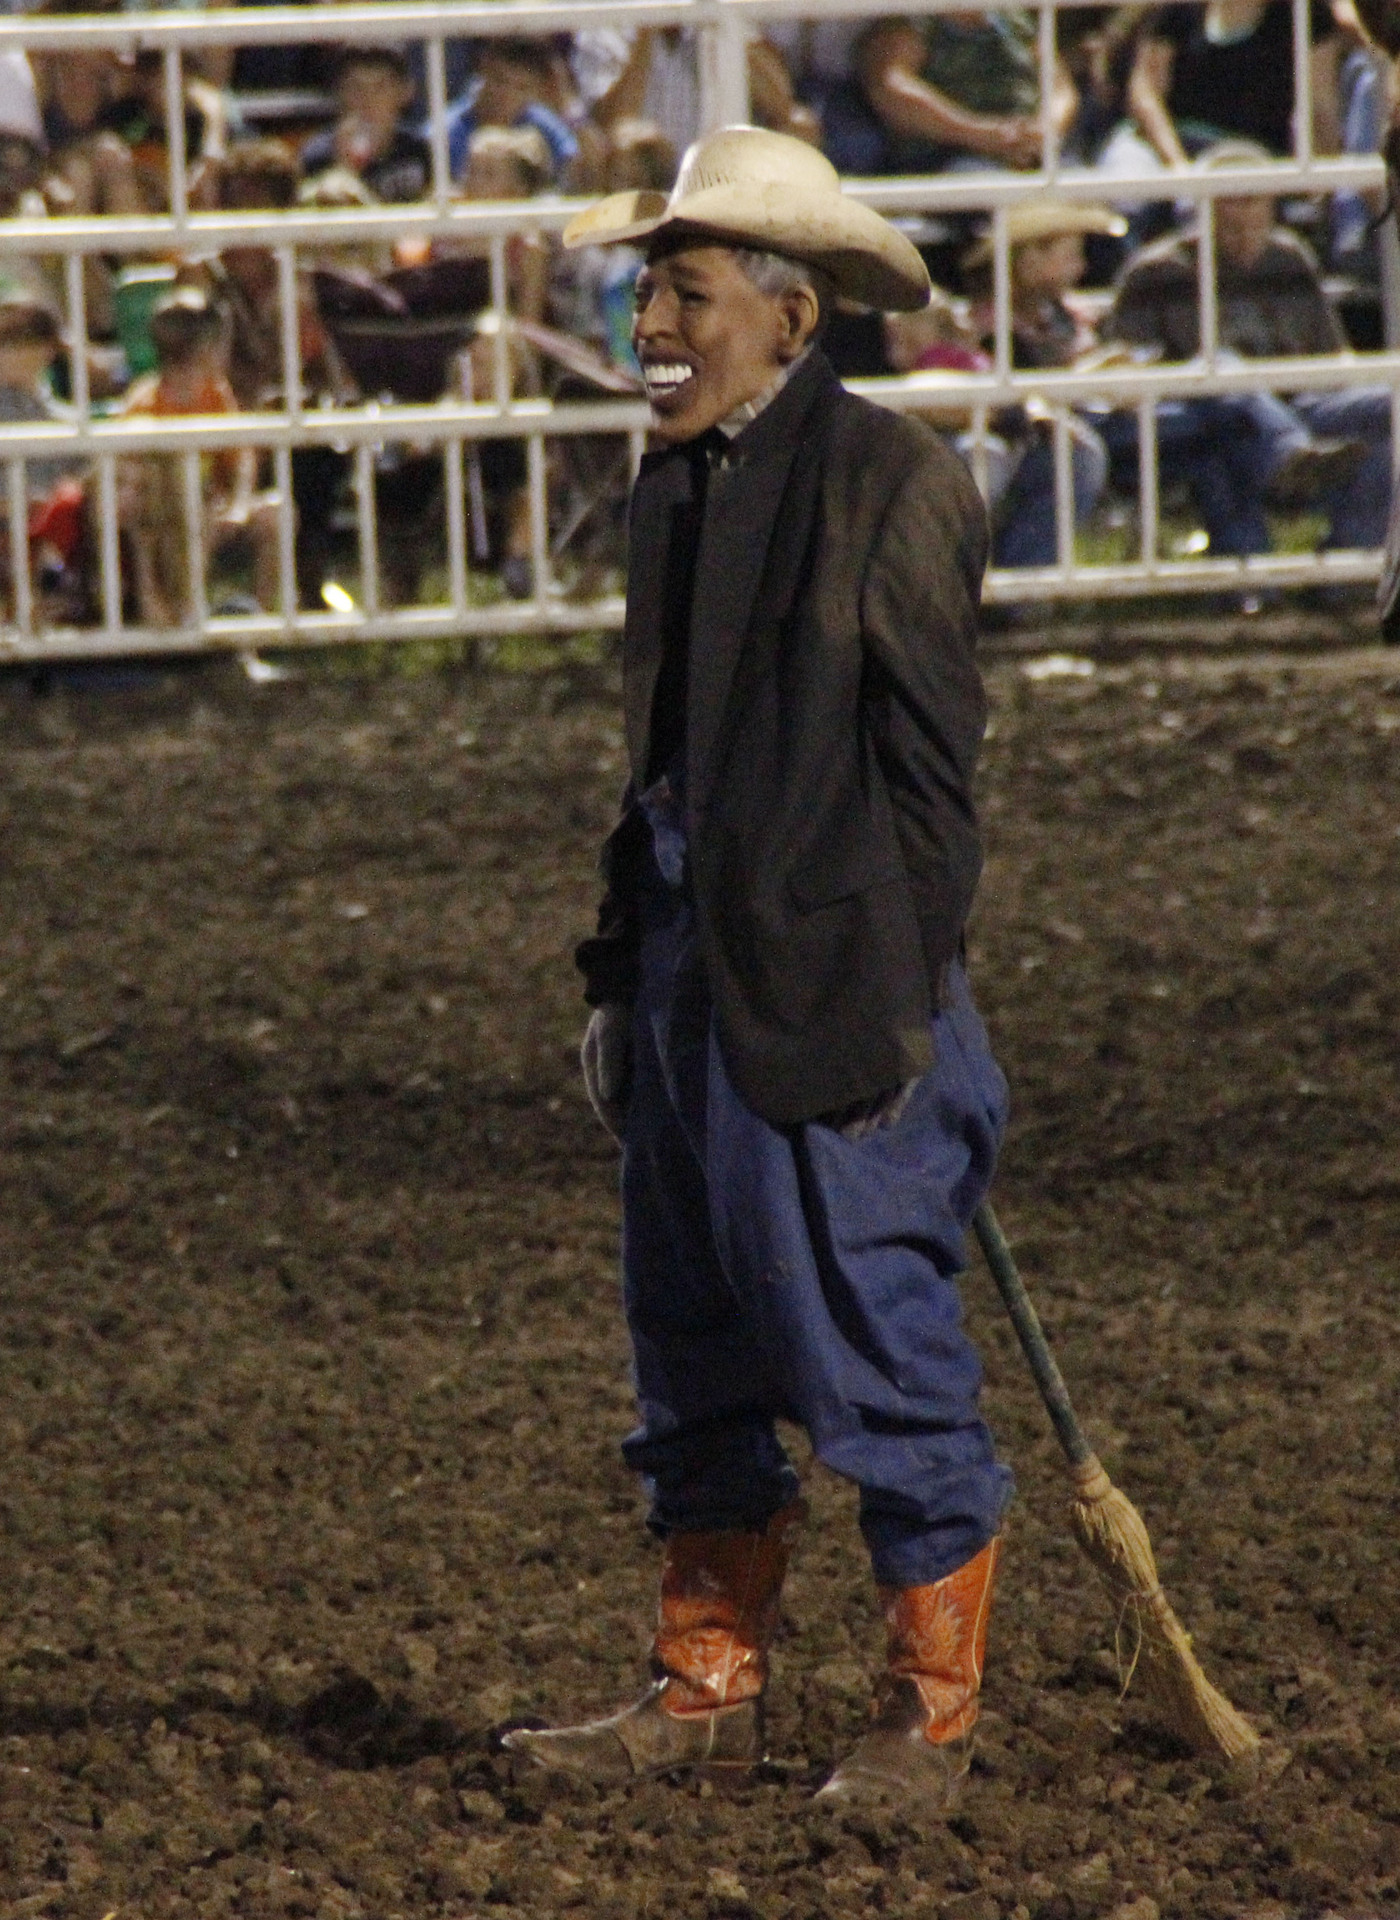 Rodeo Clown In Obama Mask Sparks Outrage Apologies The